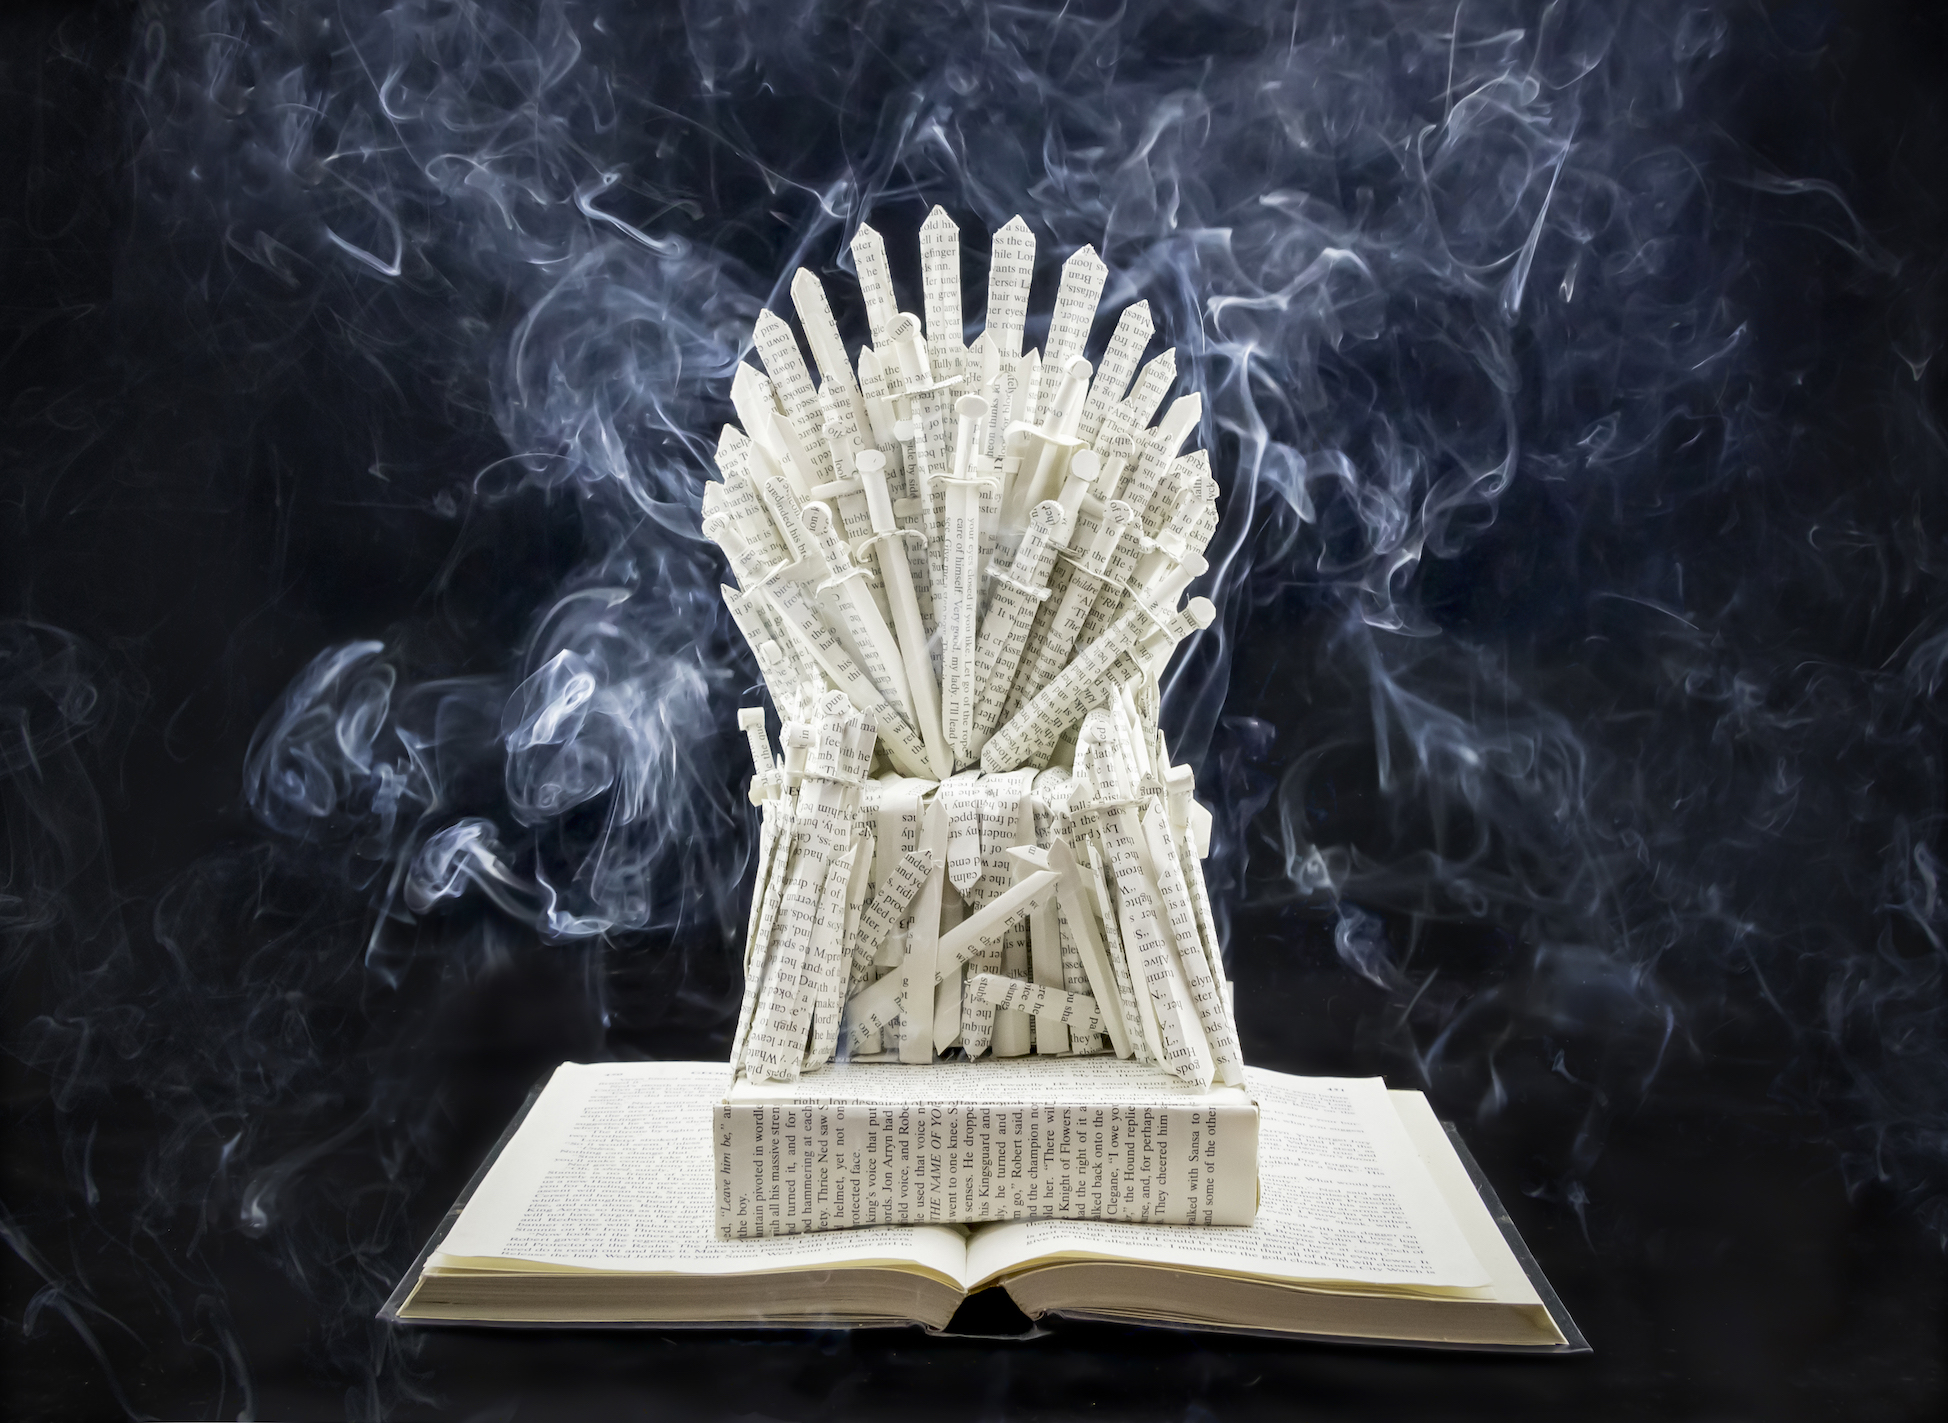 Game of Thrones Iron Throne Book Sculpture